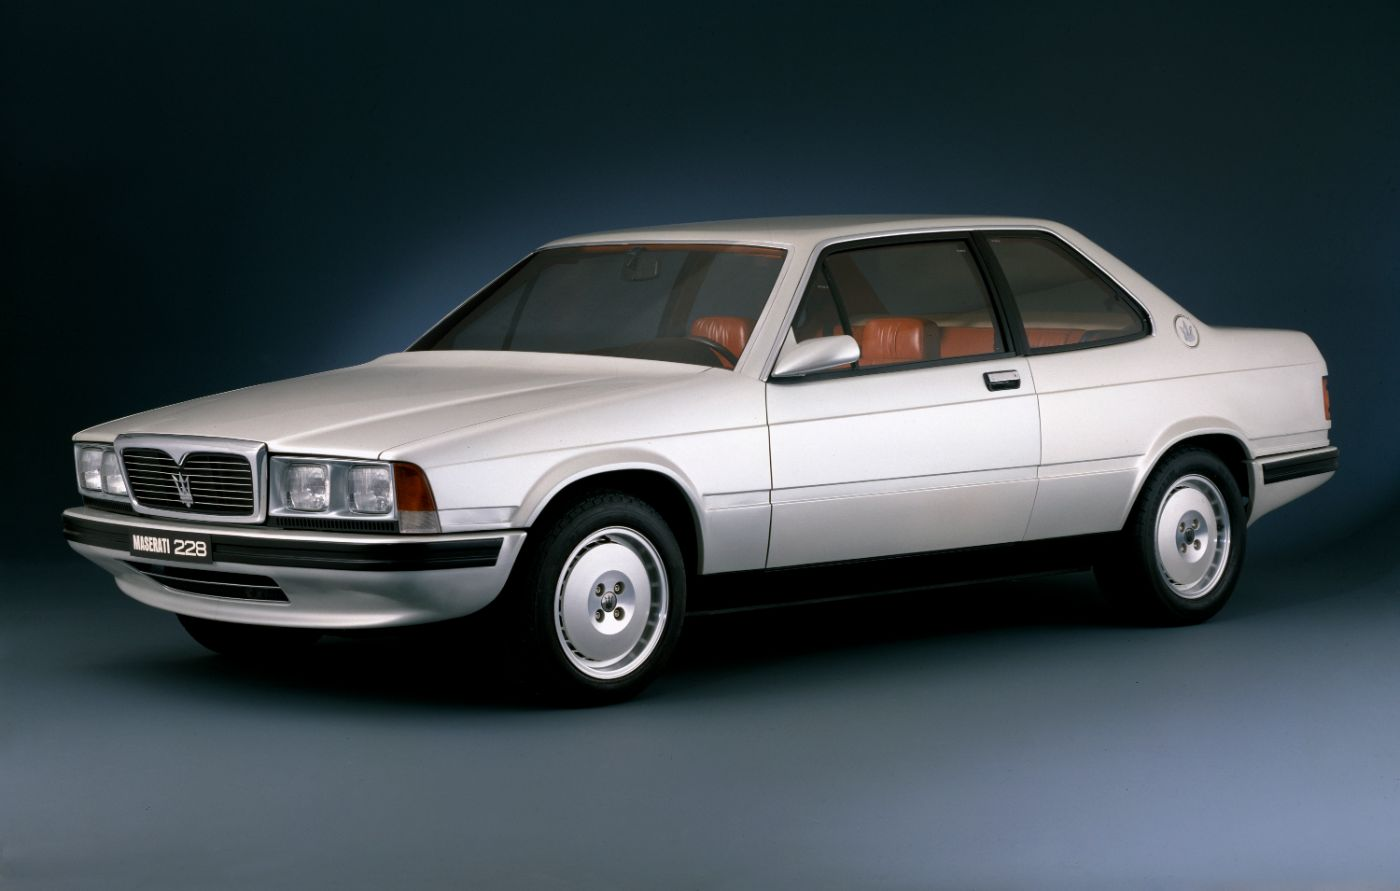 1987 Maserati 228 Biturbo - a classic model in white